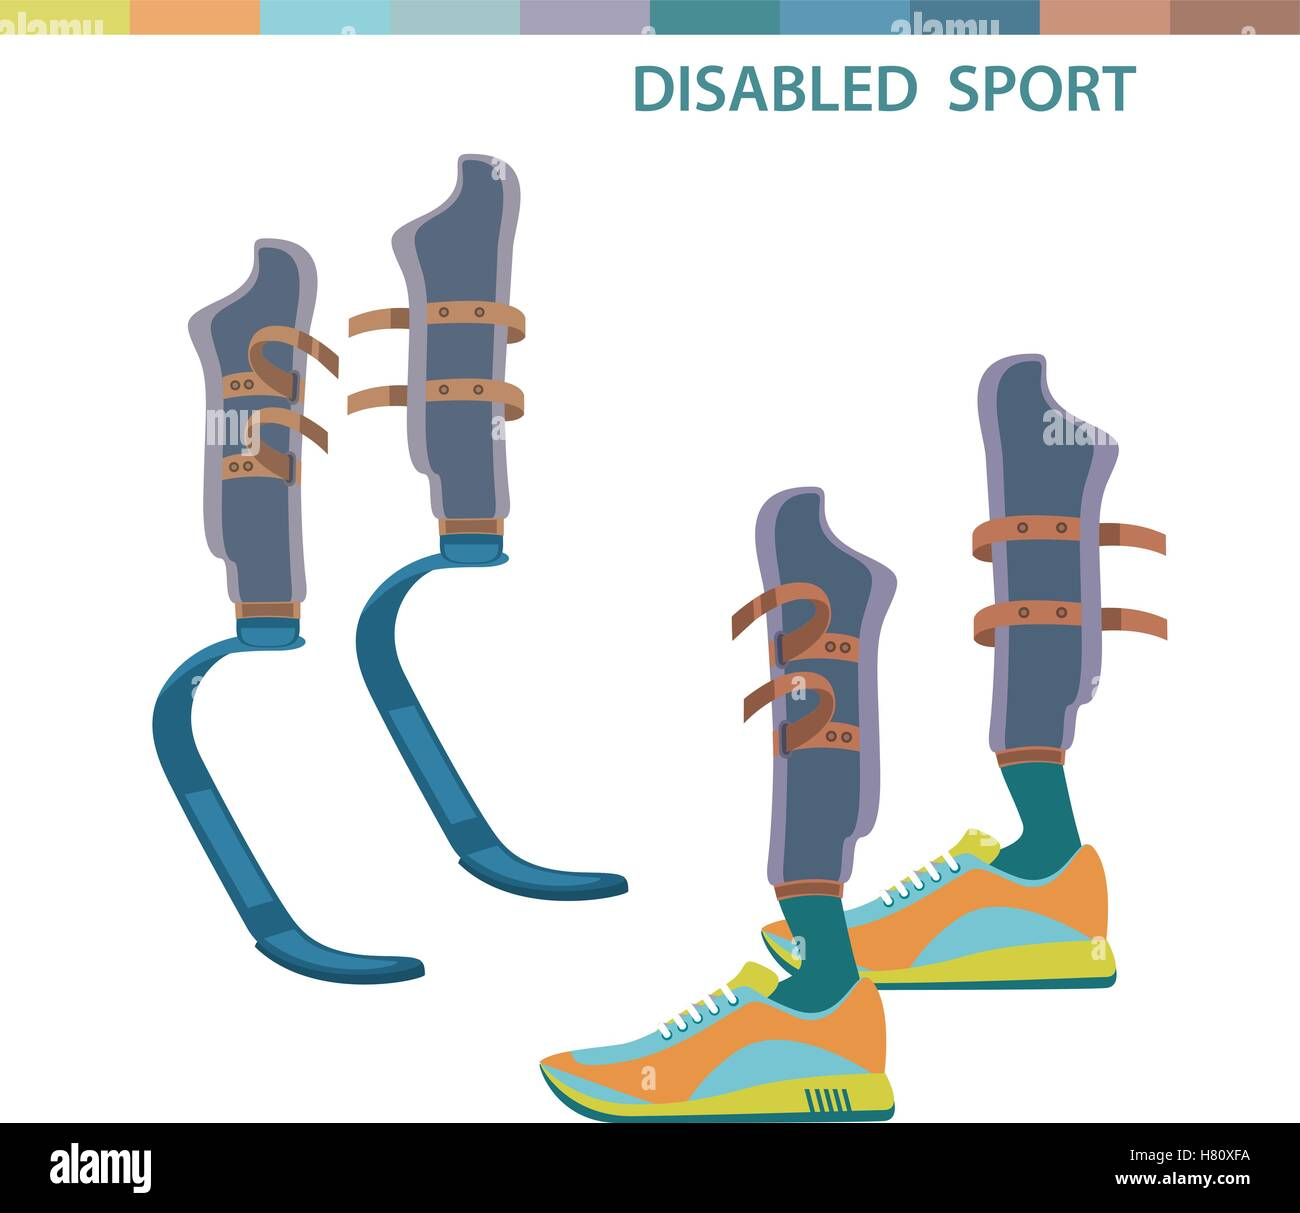 Disabled sports invalid athletes competition symbols. Sporting the lower limbs. isolated vector illustration Stock Vector